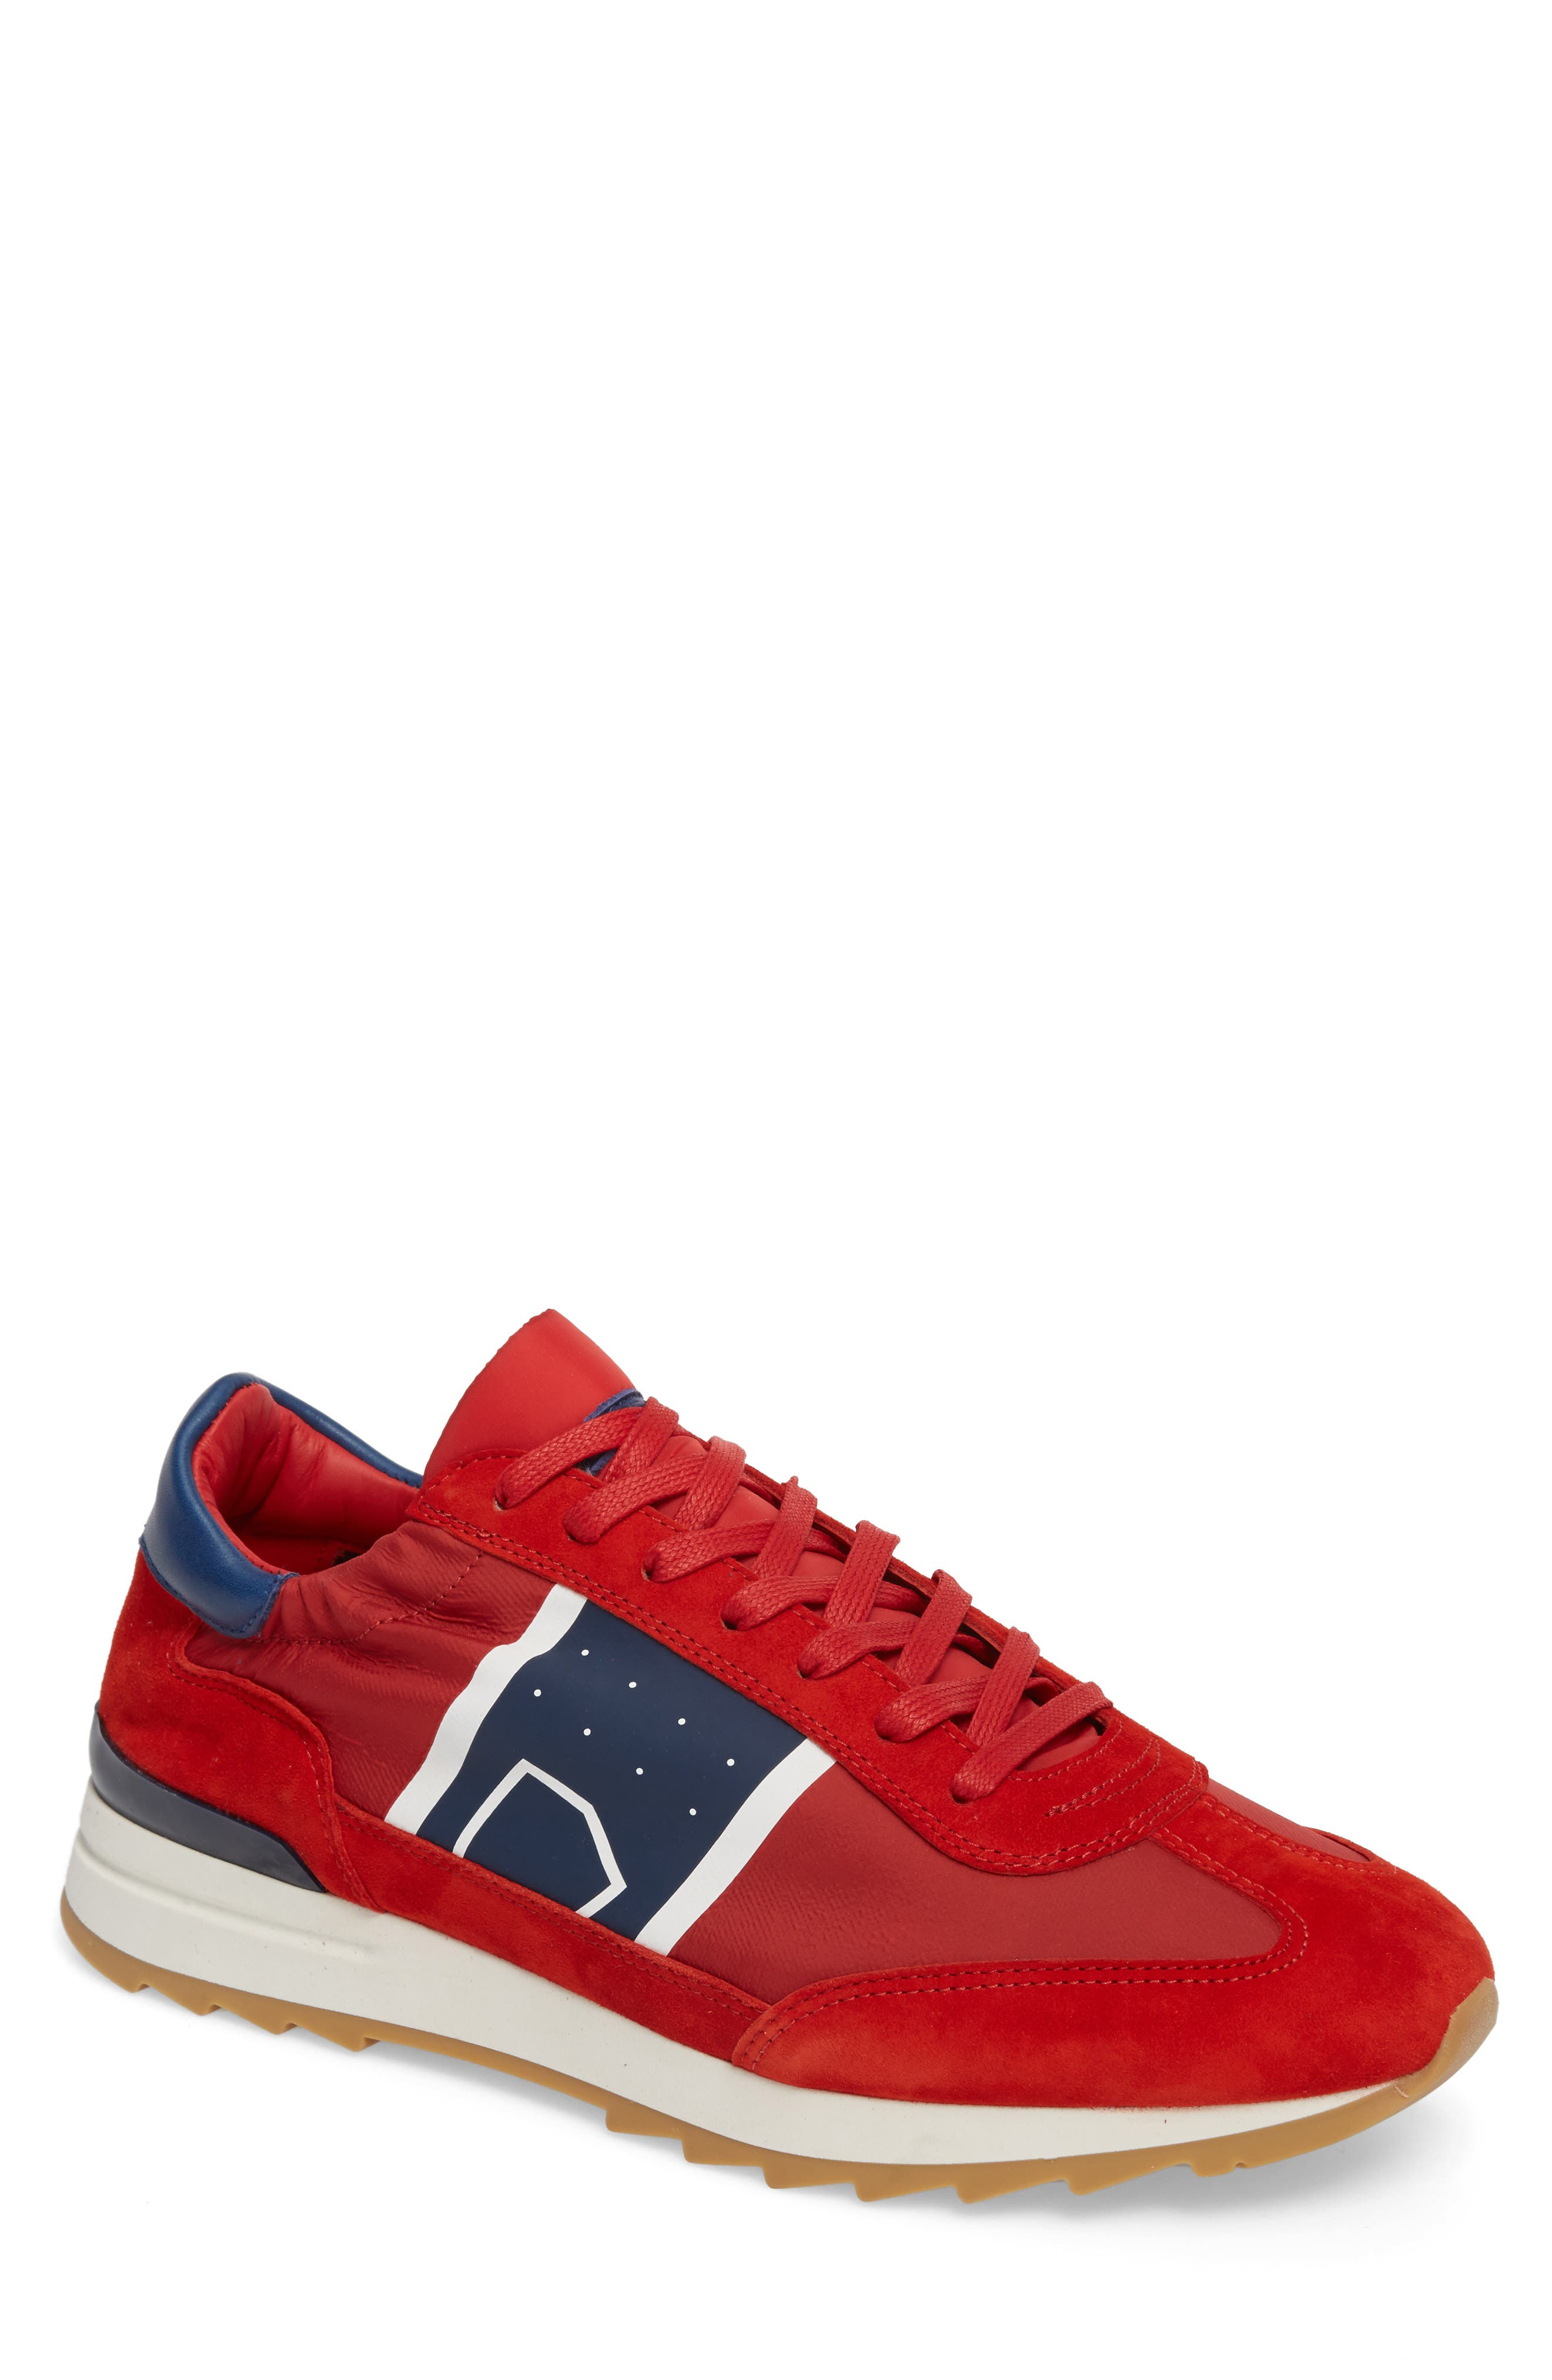 Toujours Sneaker,                         Main,                         color, 600